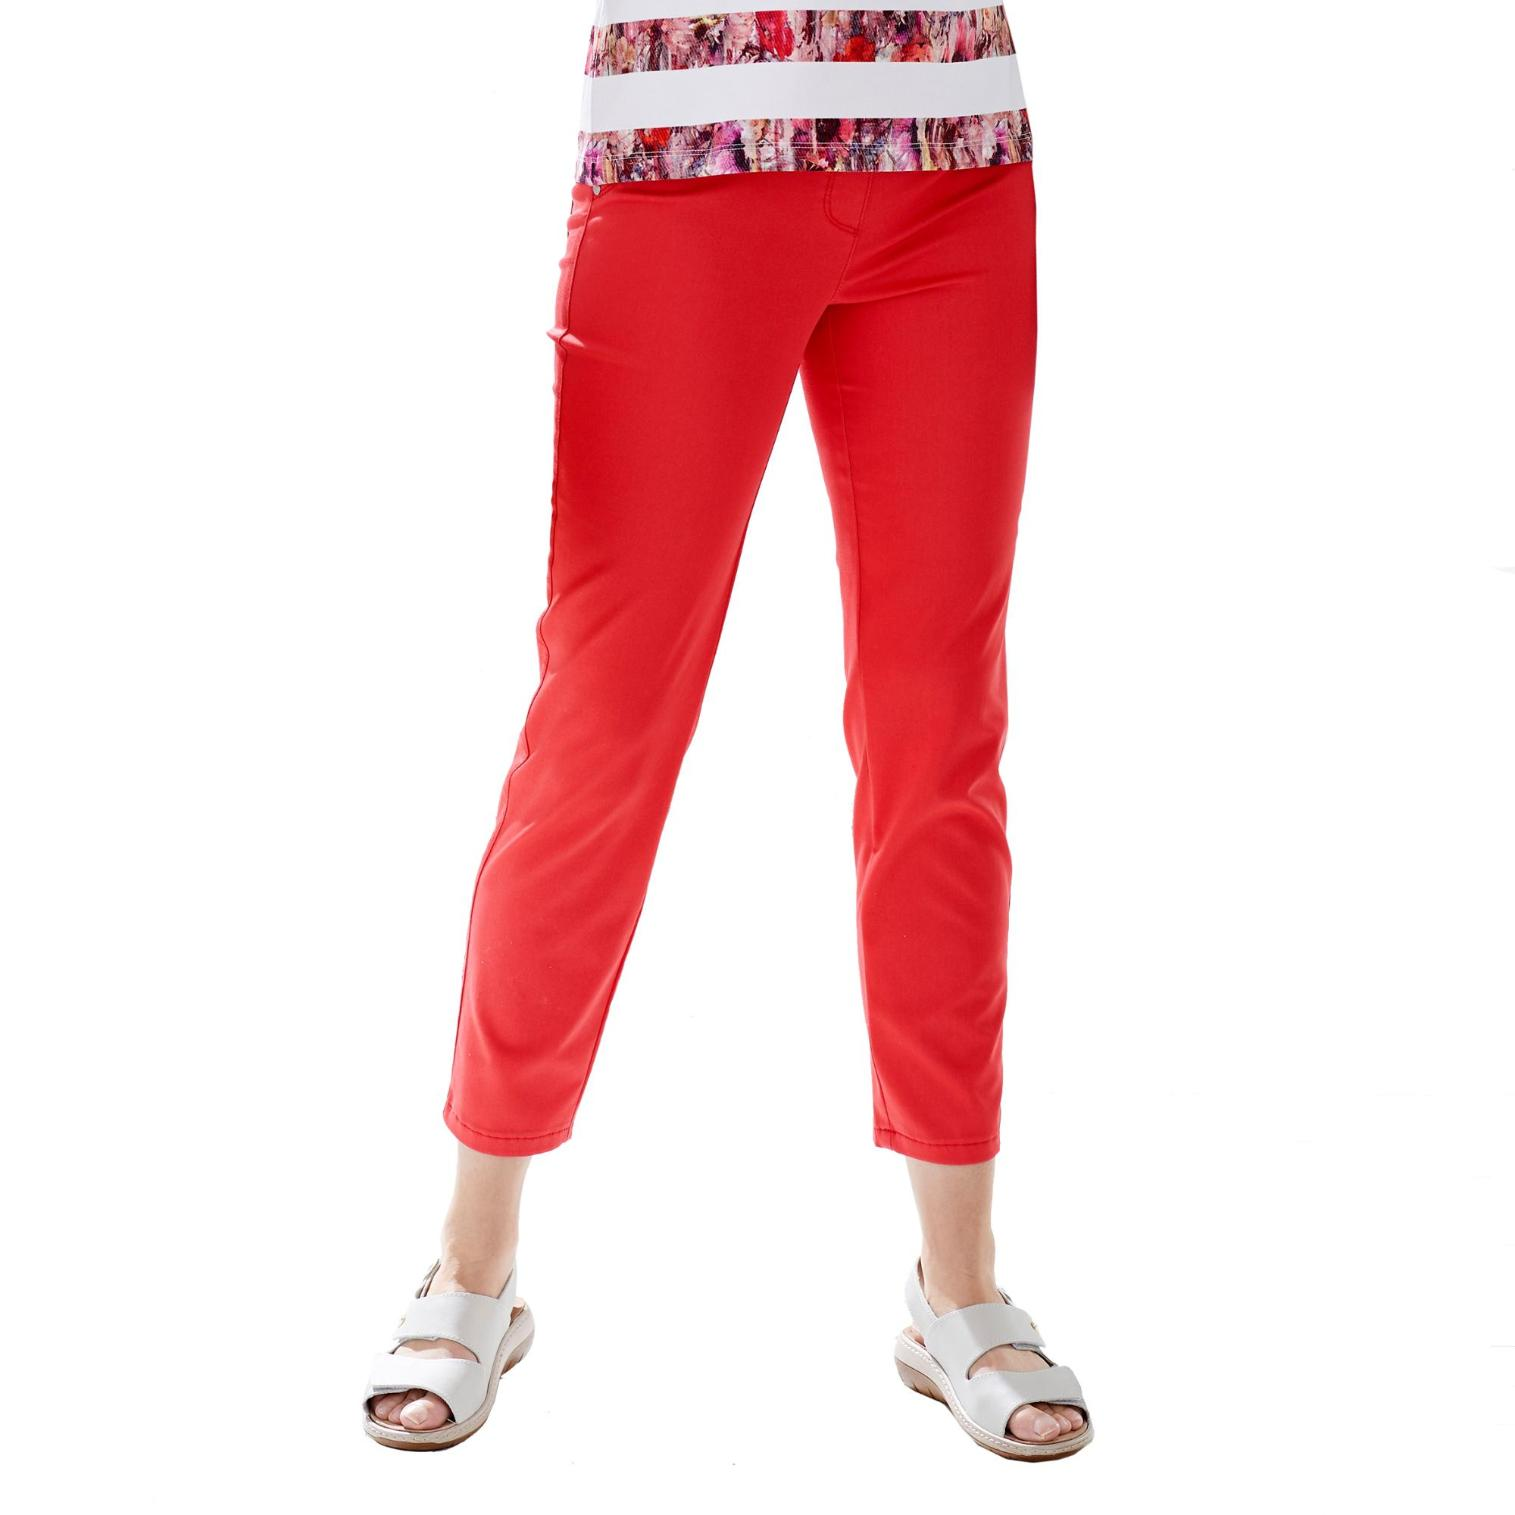 Relaxed by Toni My Darling 7/8-Jeans - Damen - rot in Größe 48